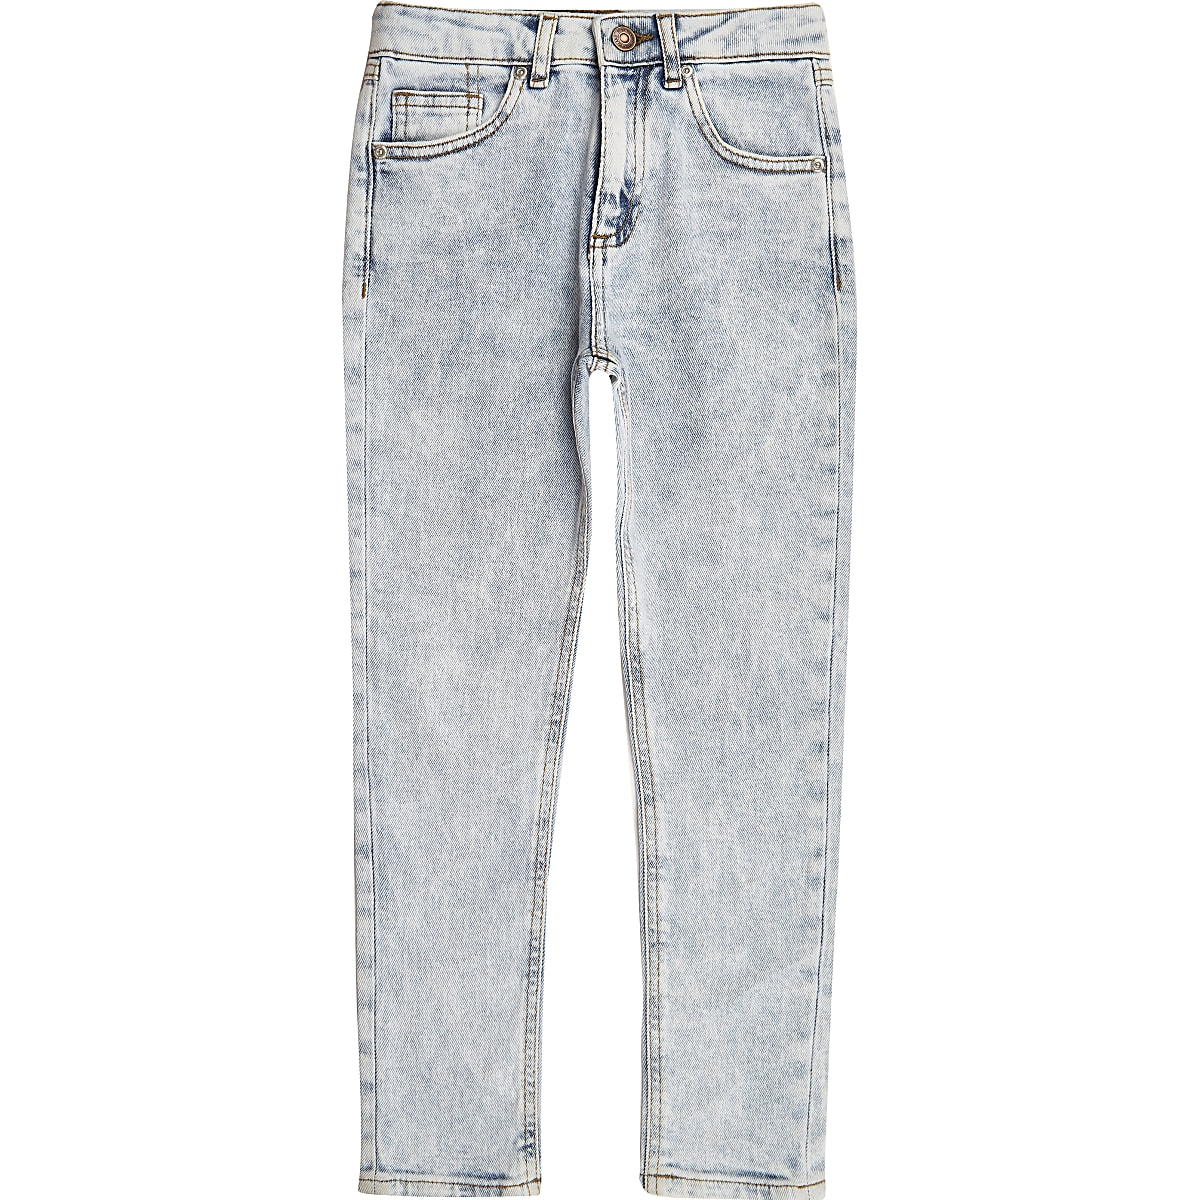 Boys light blue wash Sid skinny jeans